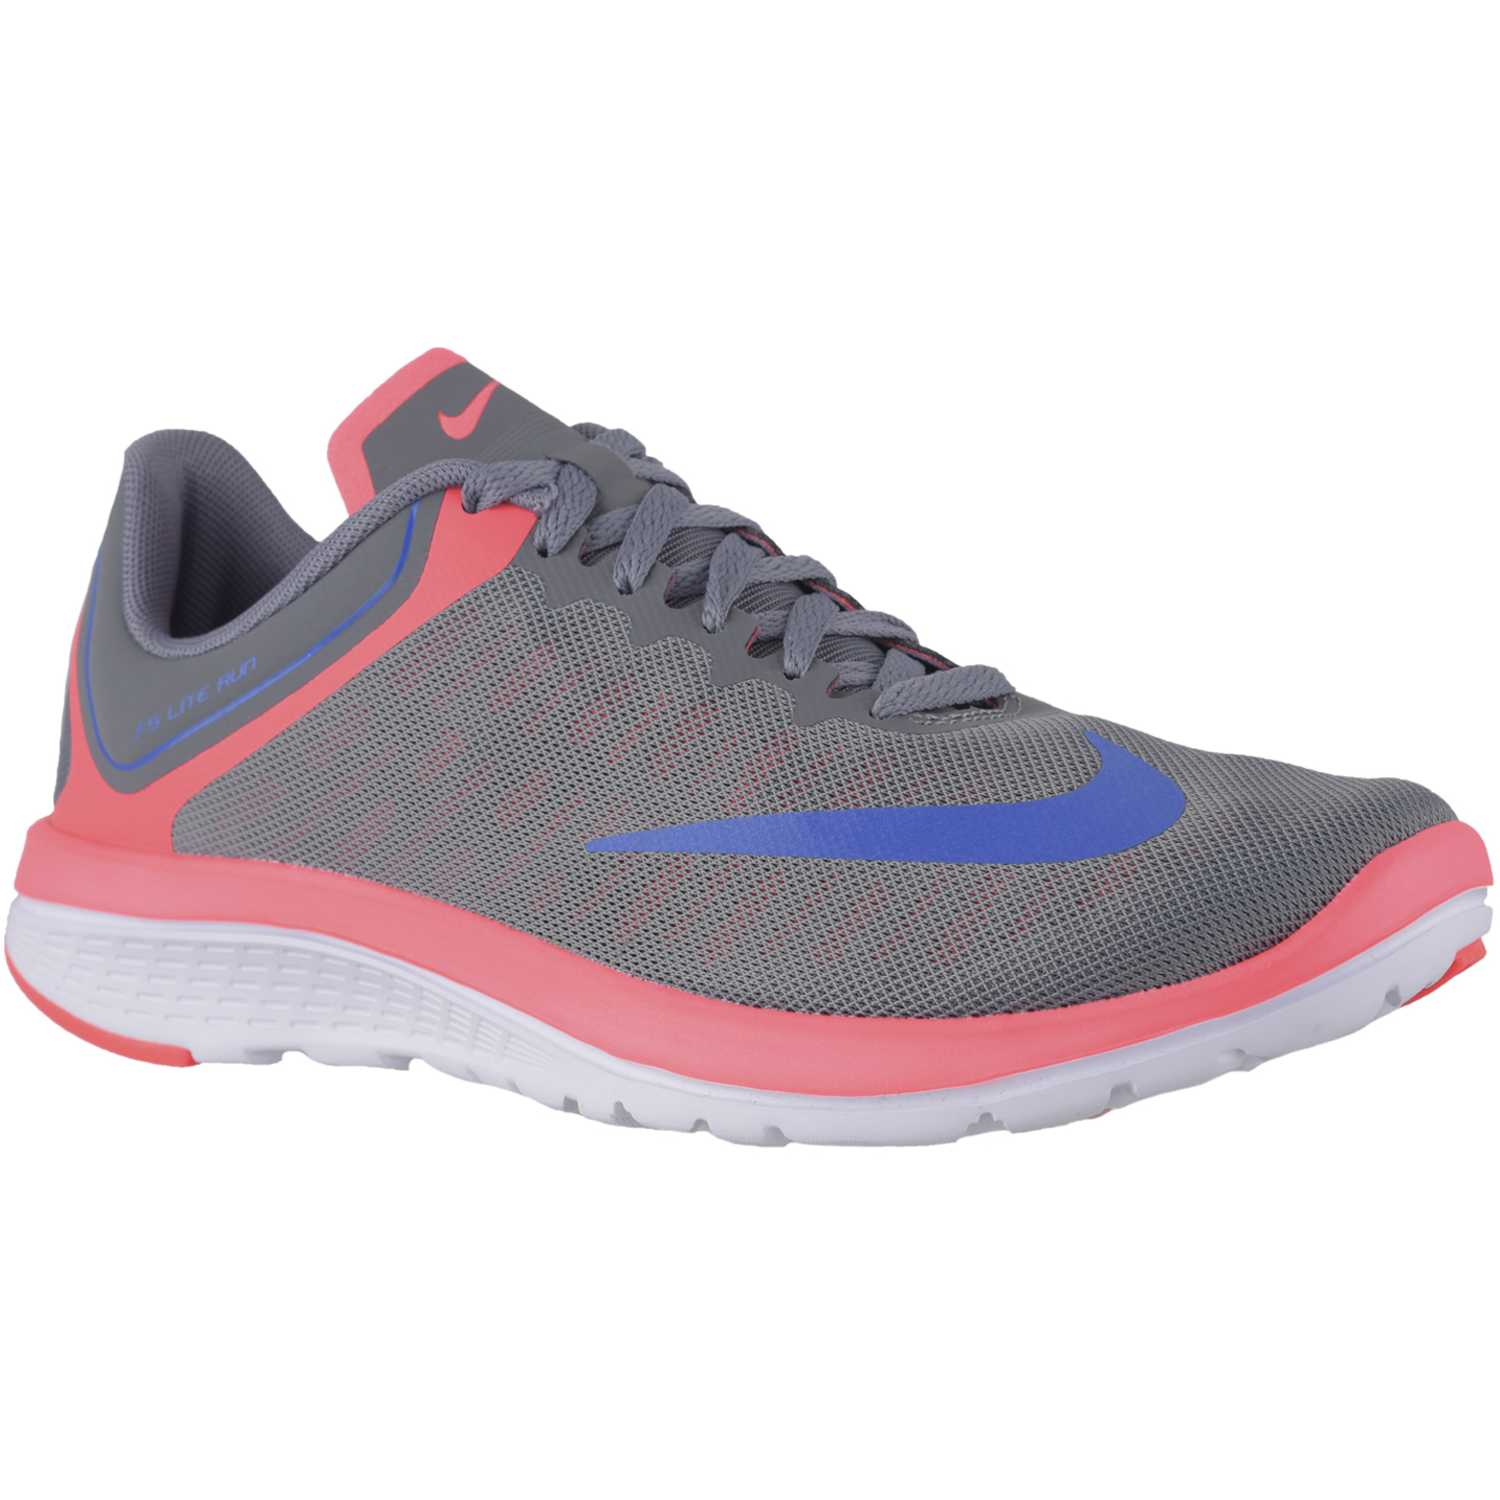 uk availability 2a152 1370b Casual de Mujer Nike Gris / salmón wmns fs lite run 4 ...